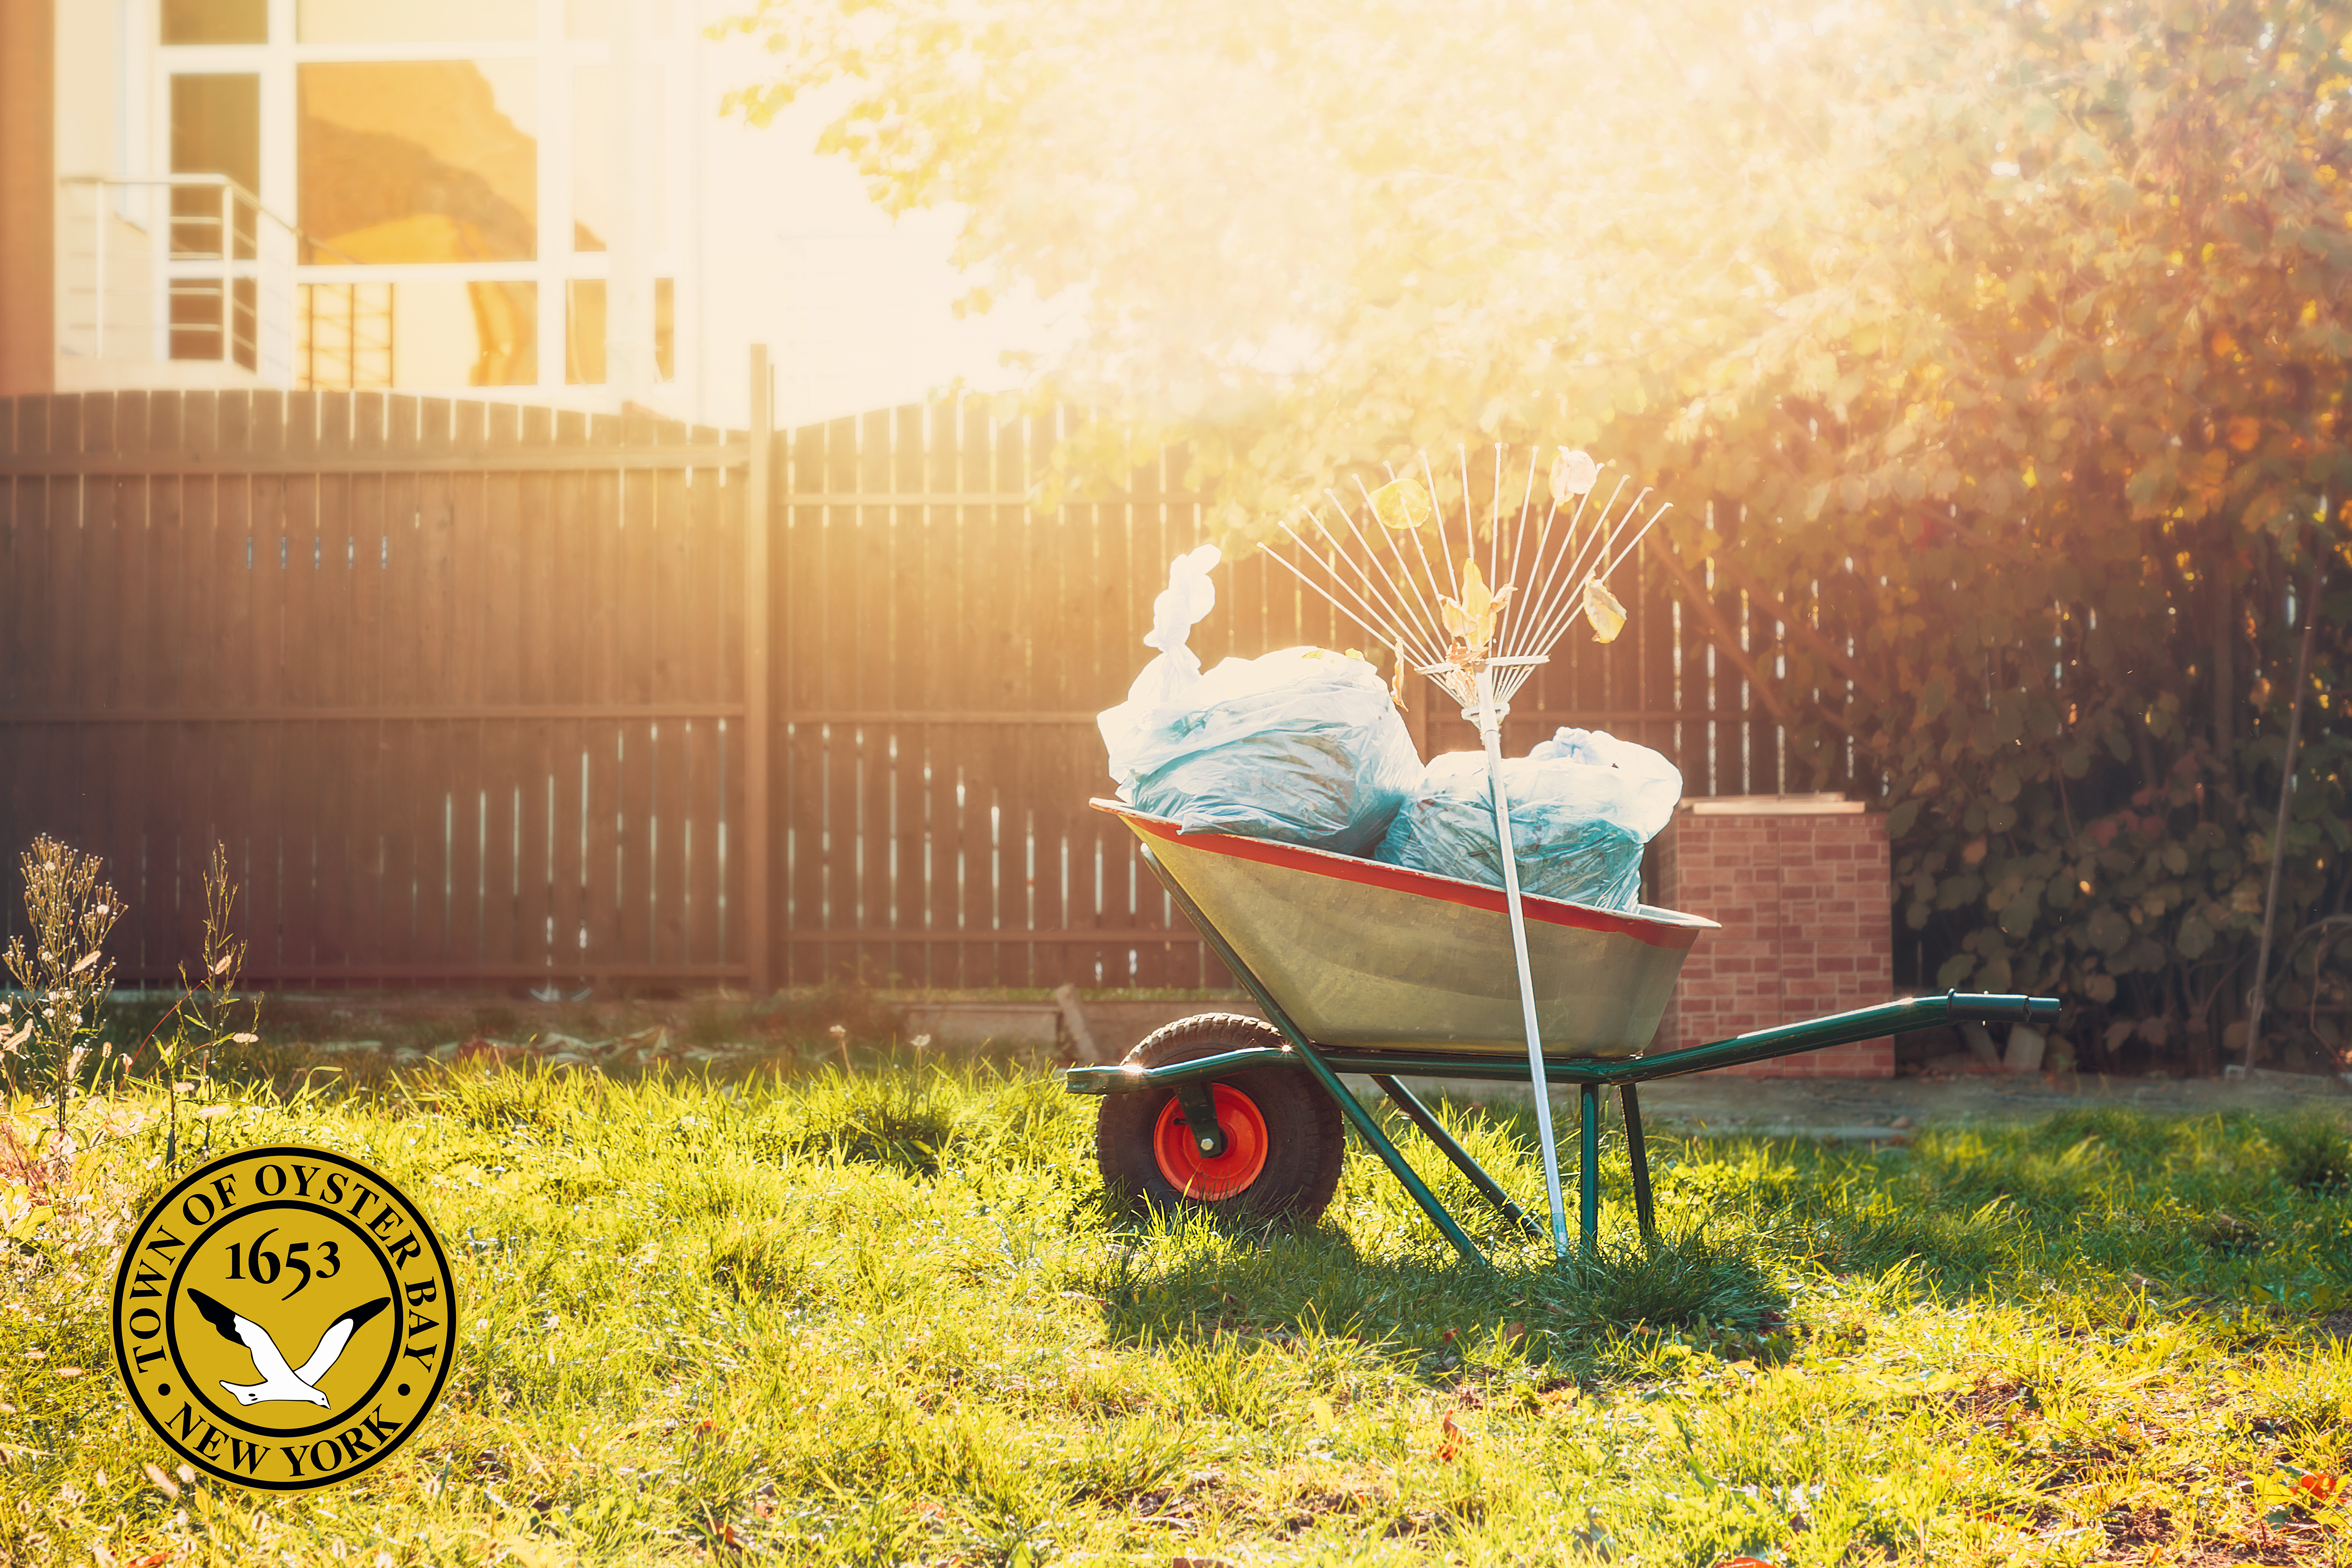 Town To Resume Yard Waste Collection April 1St – Town Of Inside Town Oyster Bay Sanitation Calendar